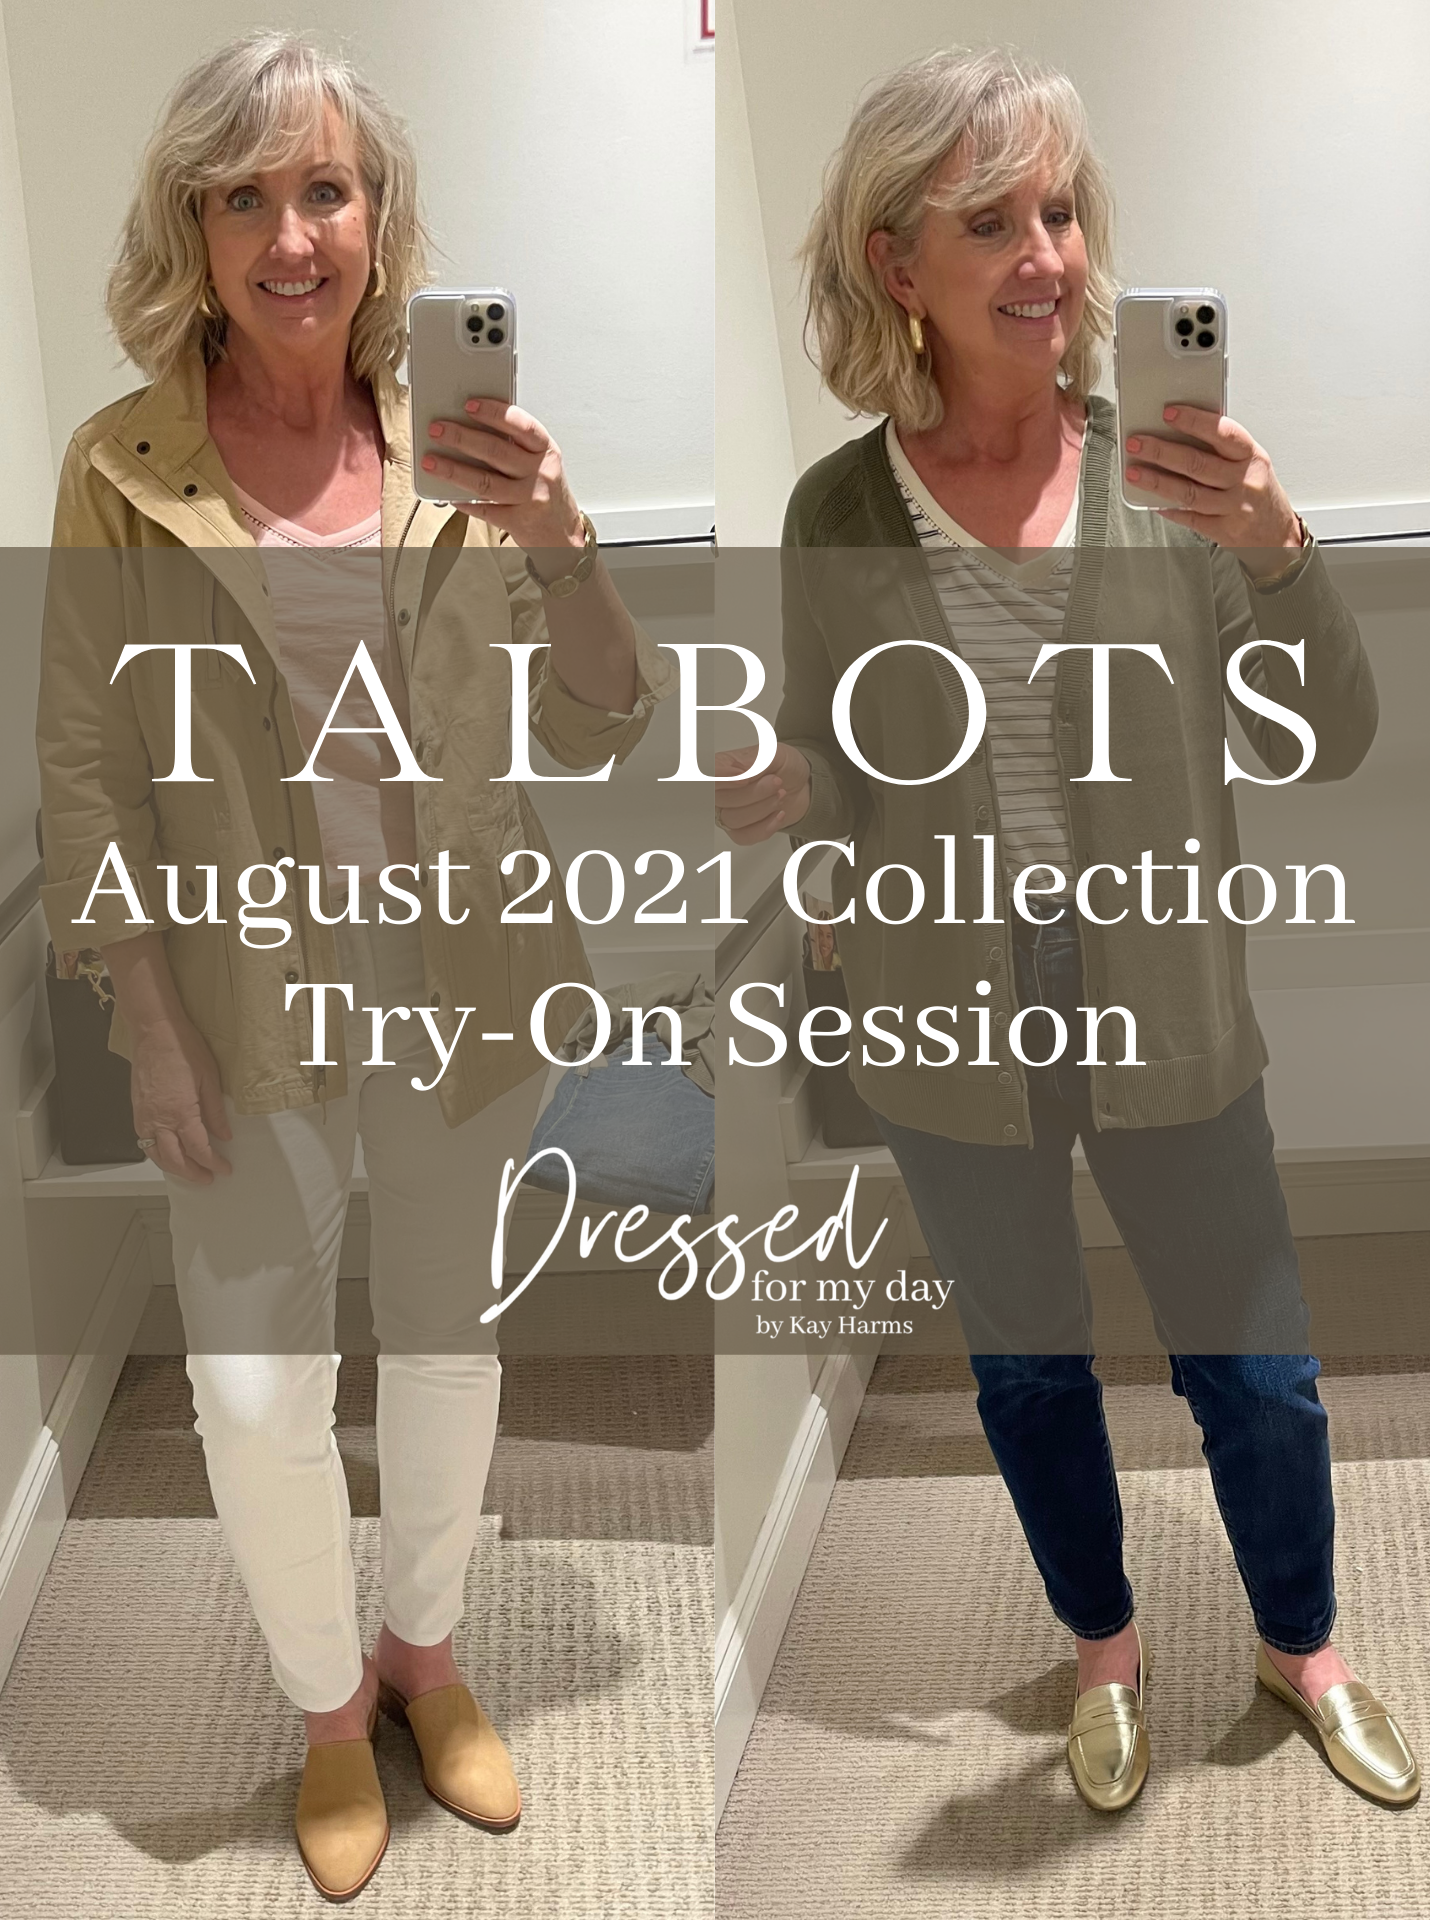 Talbots August 2021 Collection Try-On Session